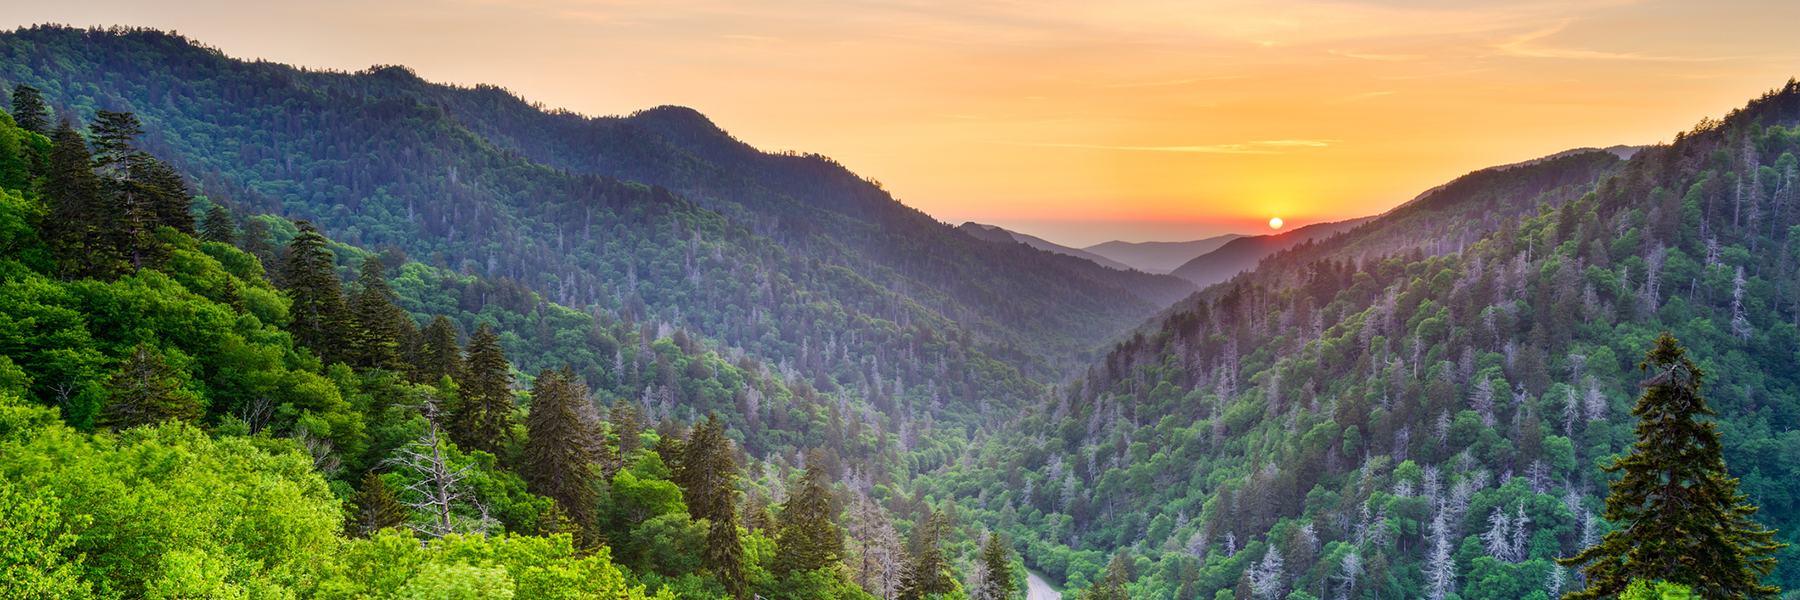 Smoky Mountains image for slider